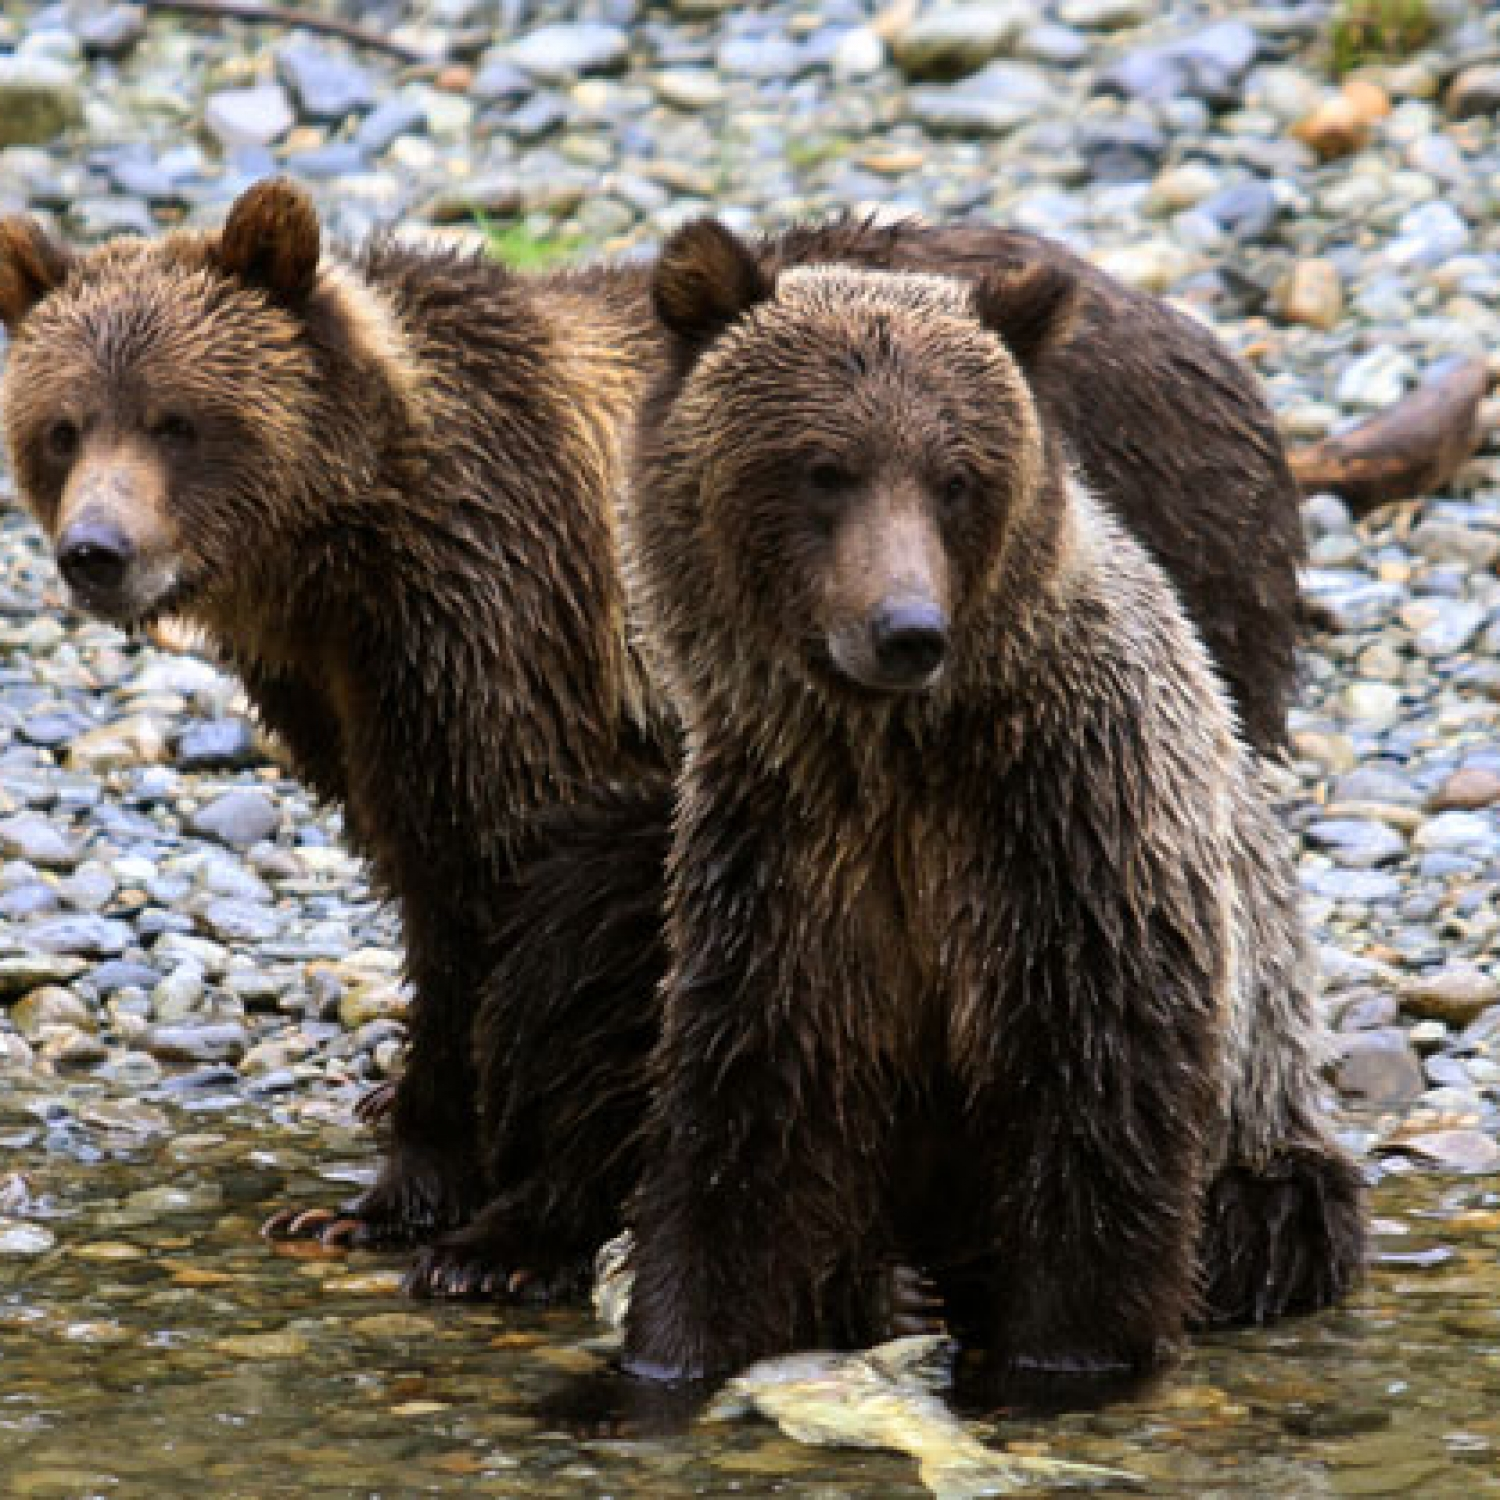 Orford River Grizzly Expedition